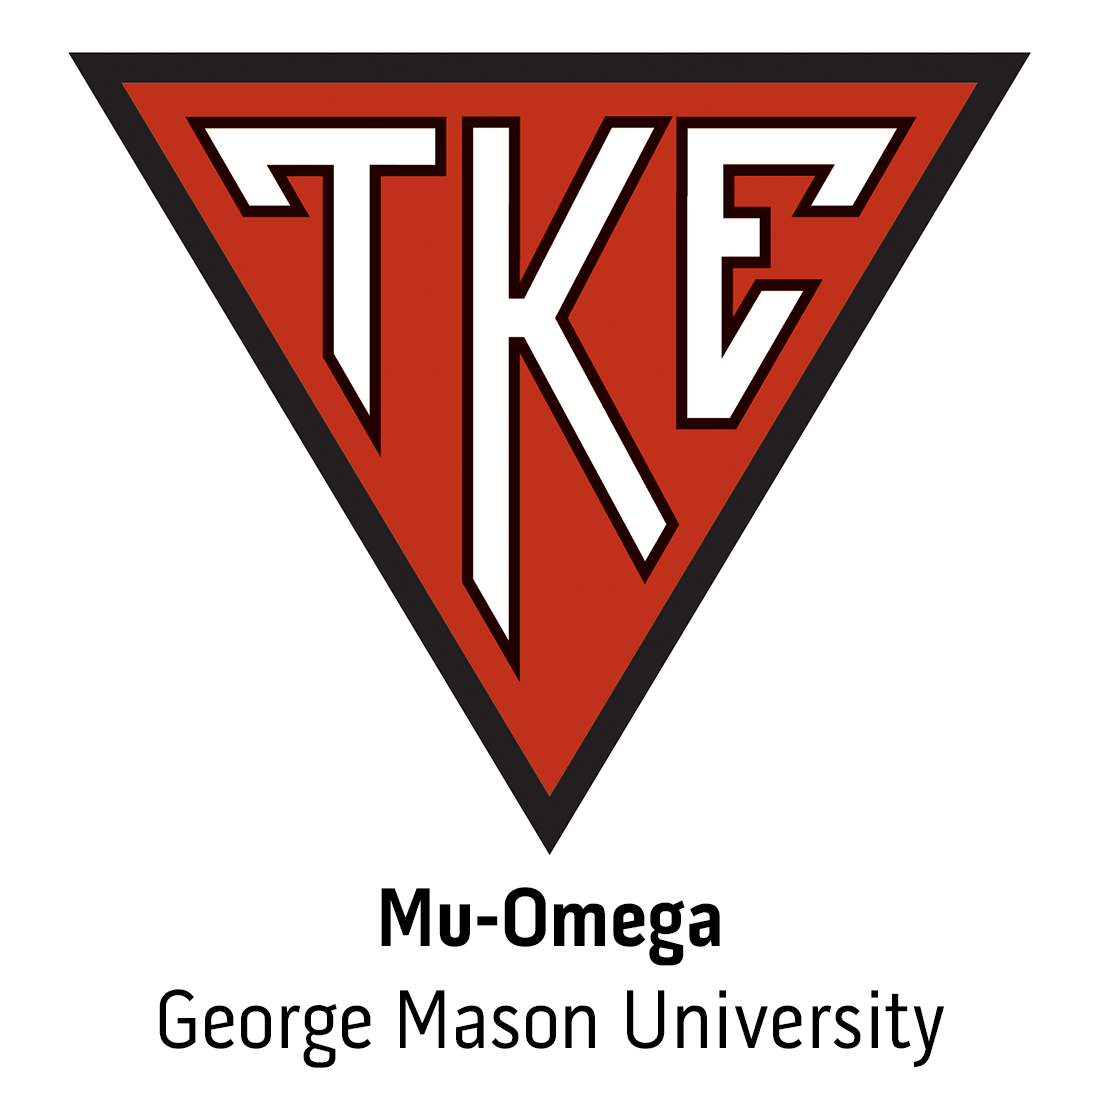 Mu-Omega Chapter at George Mason University